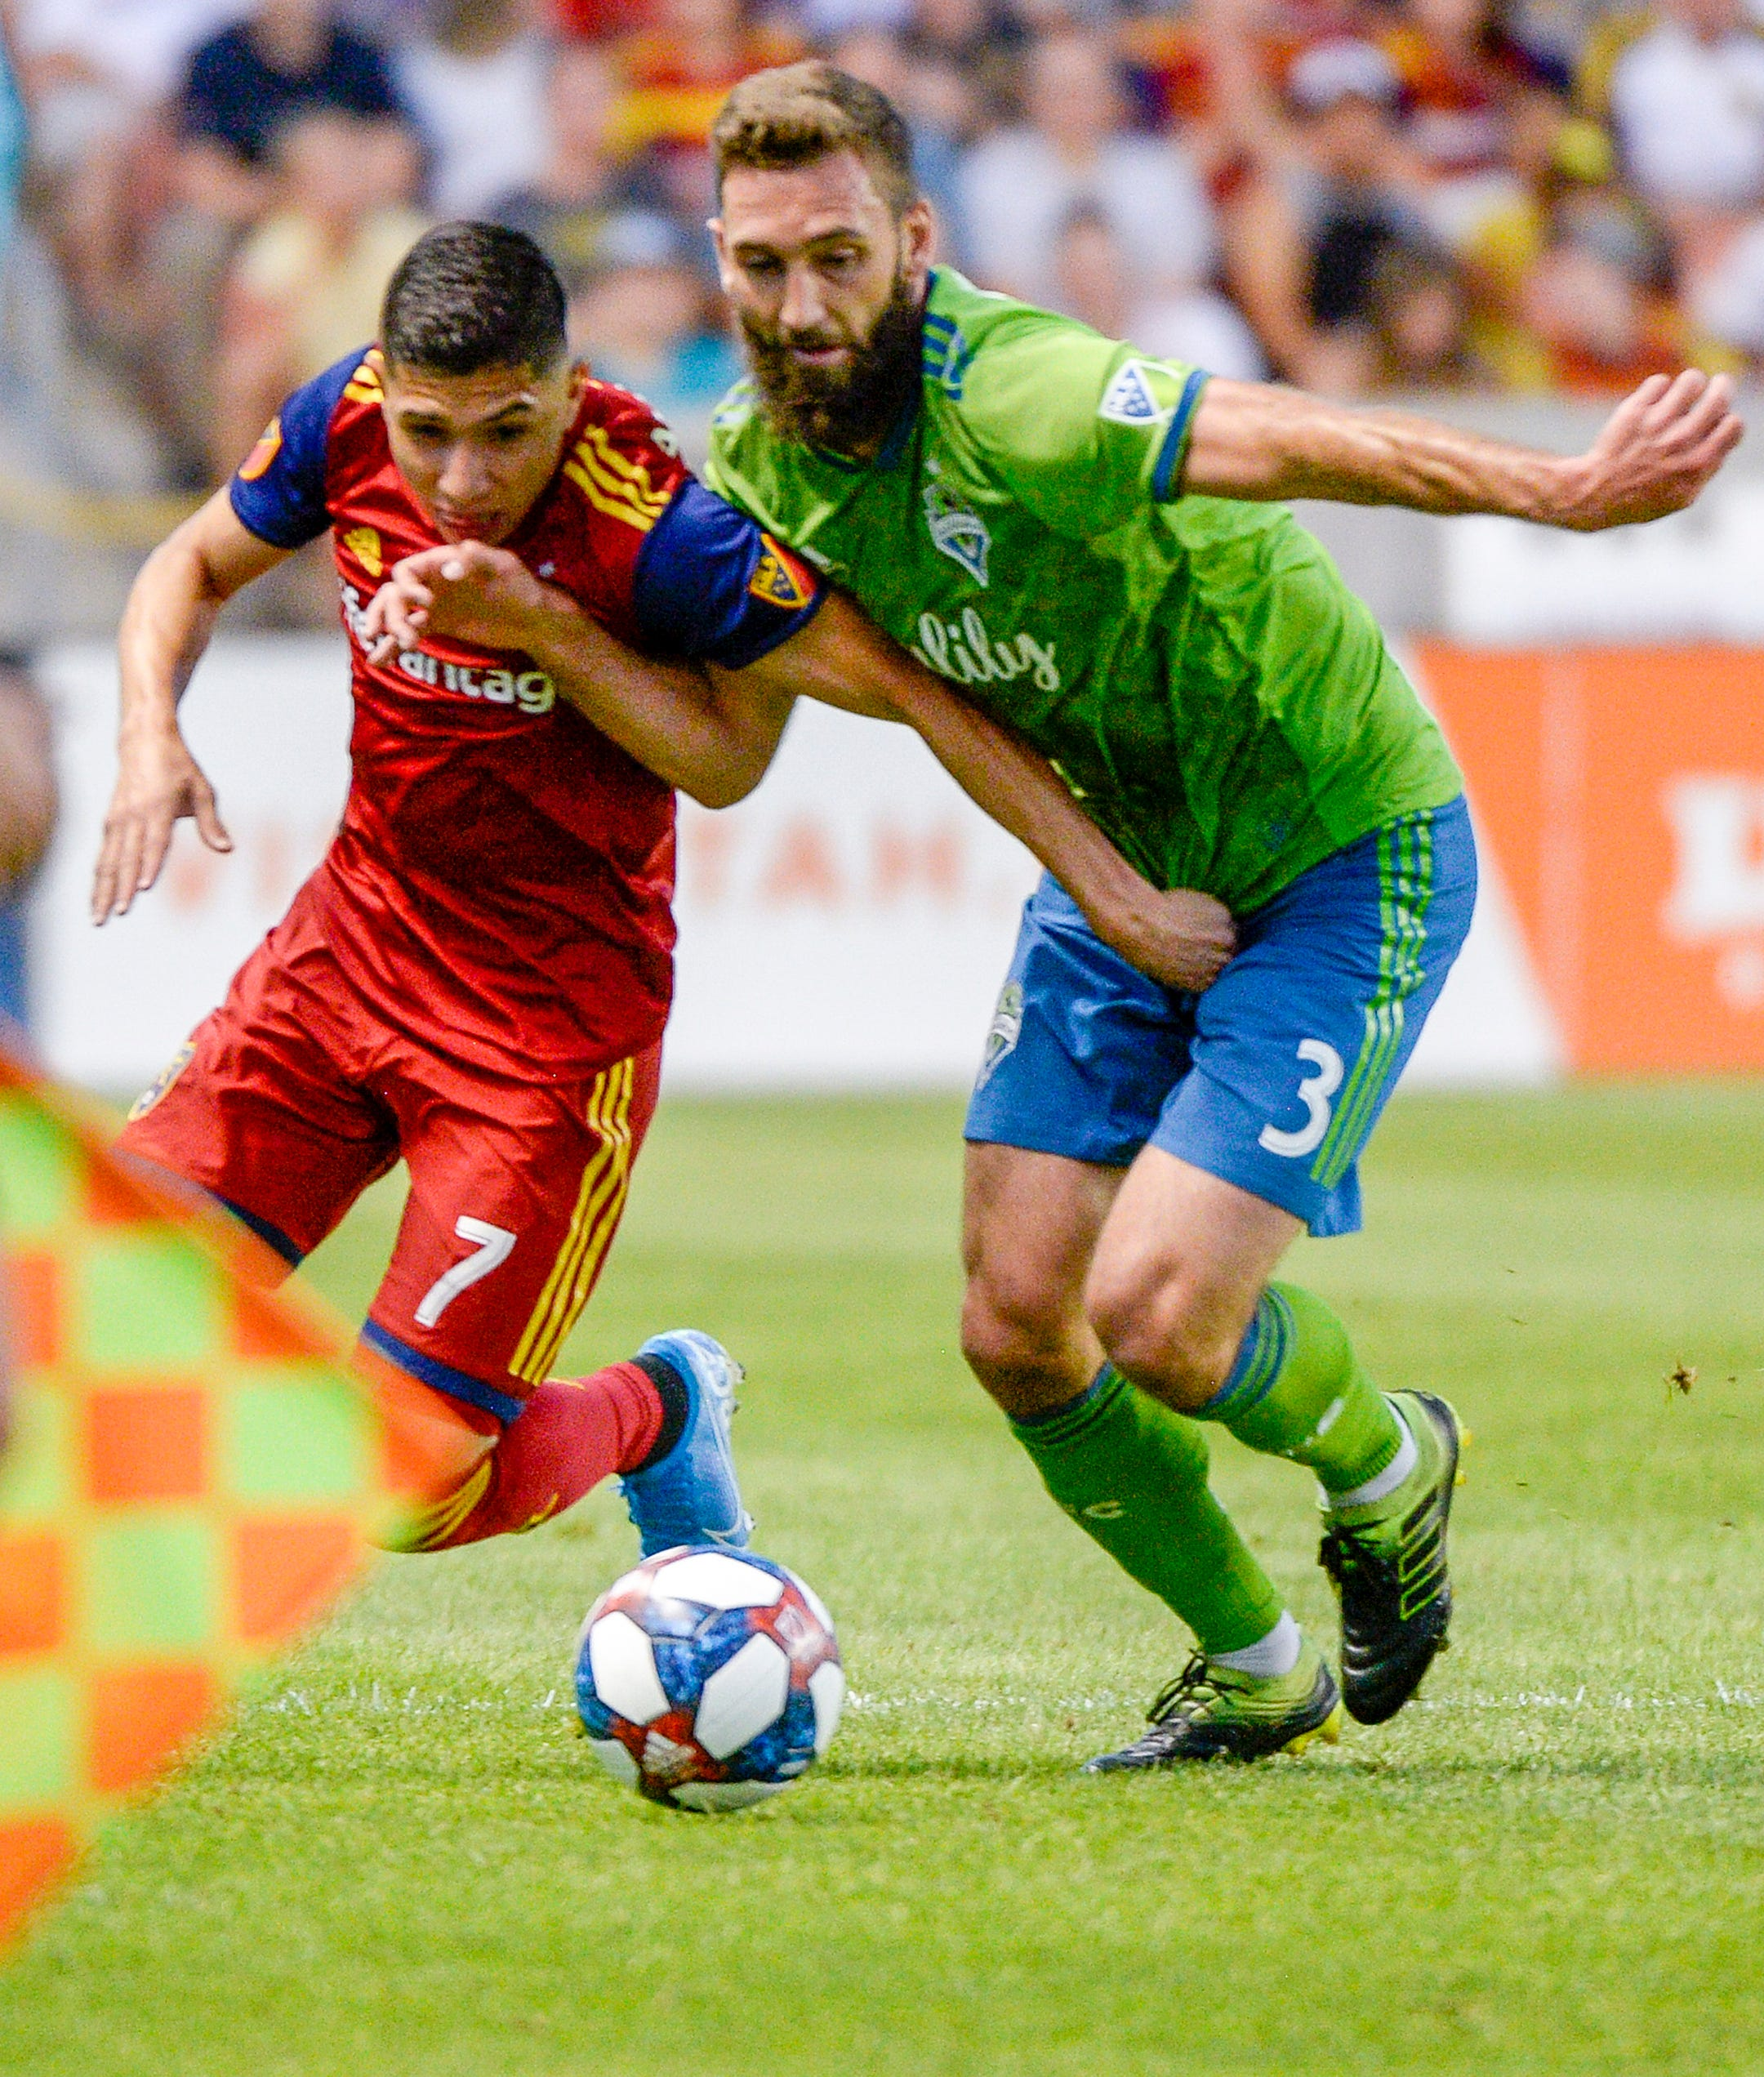 Real Salt Lake blanks Sounders 3-0